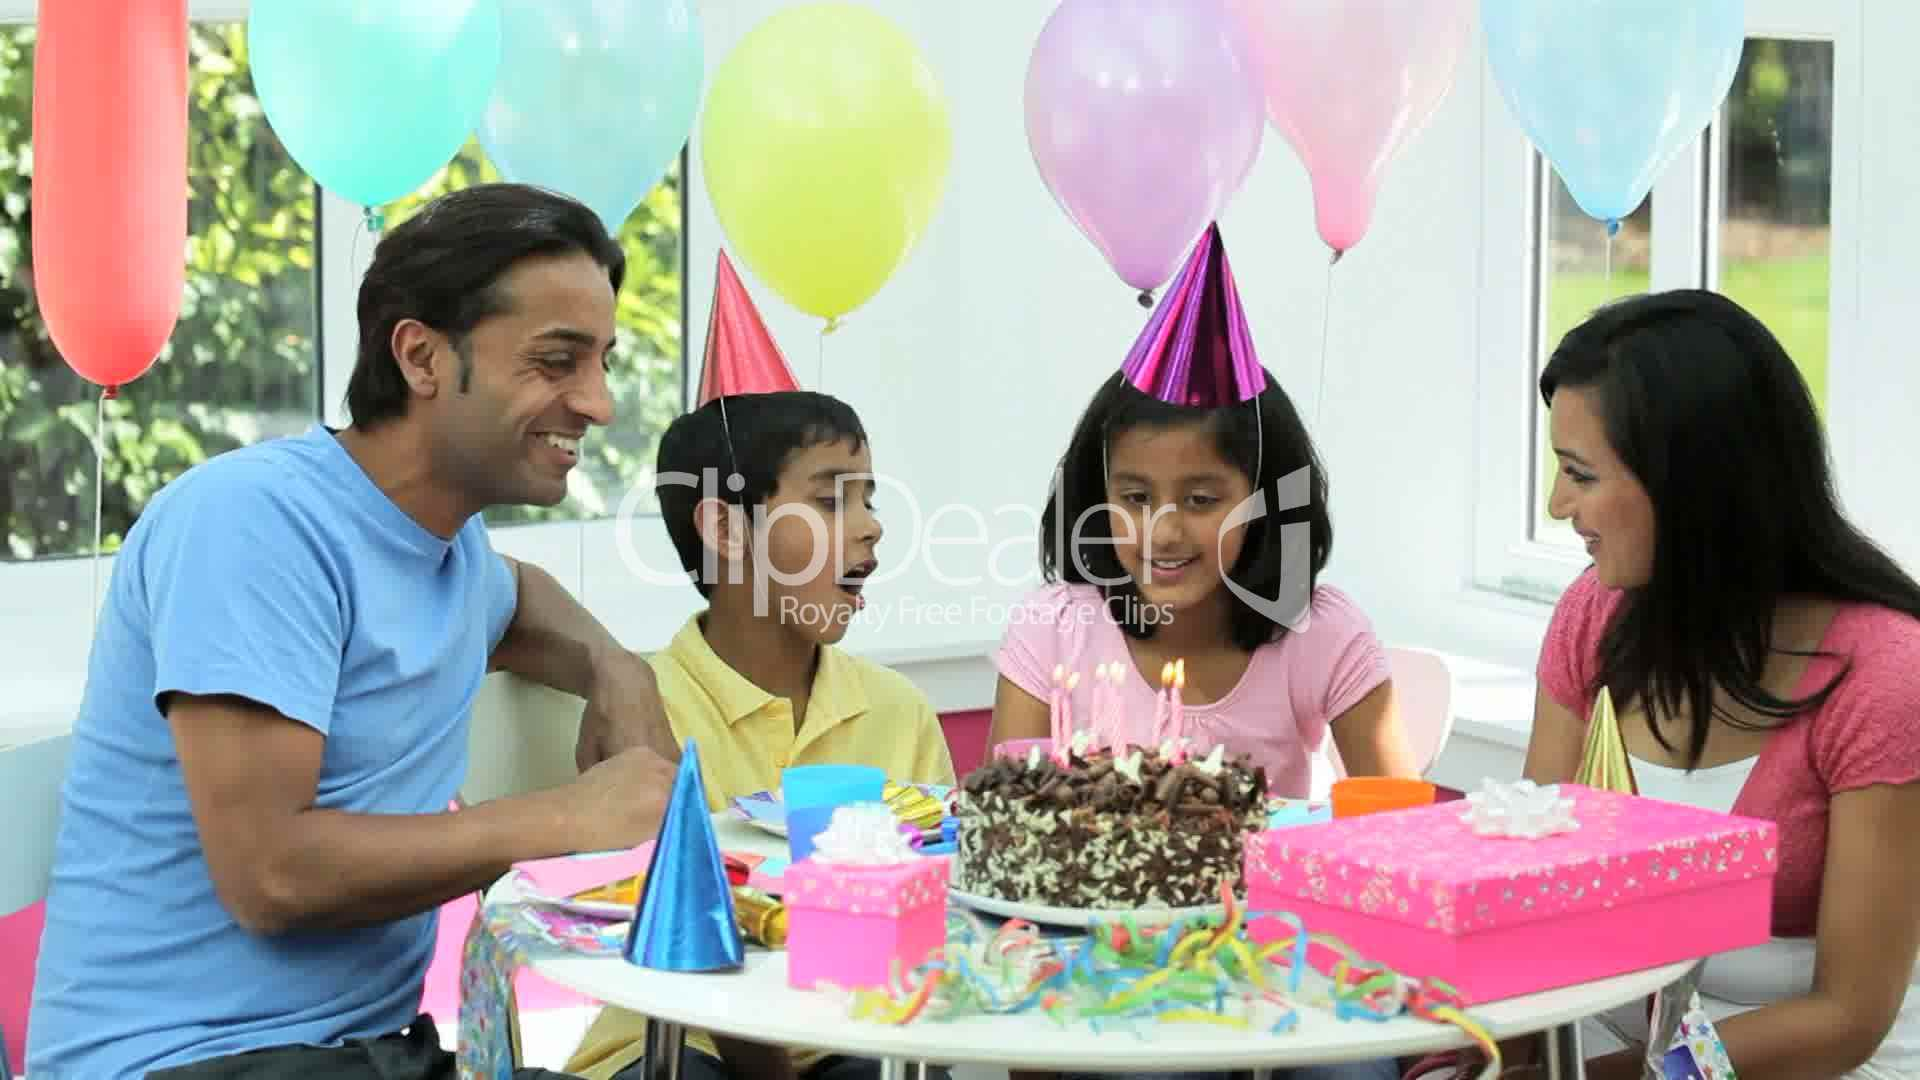 Young Asian Family Birthday Celebrations: Royalty-free video and stock ...